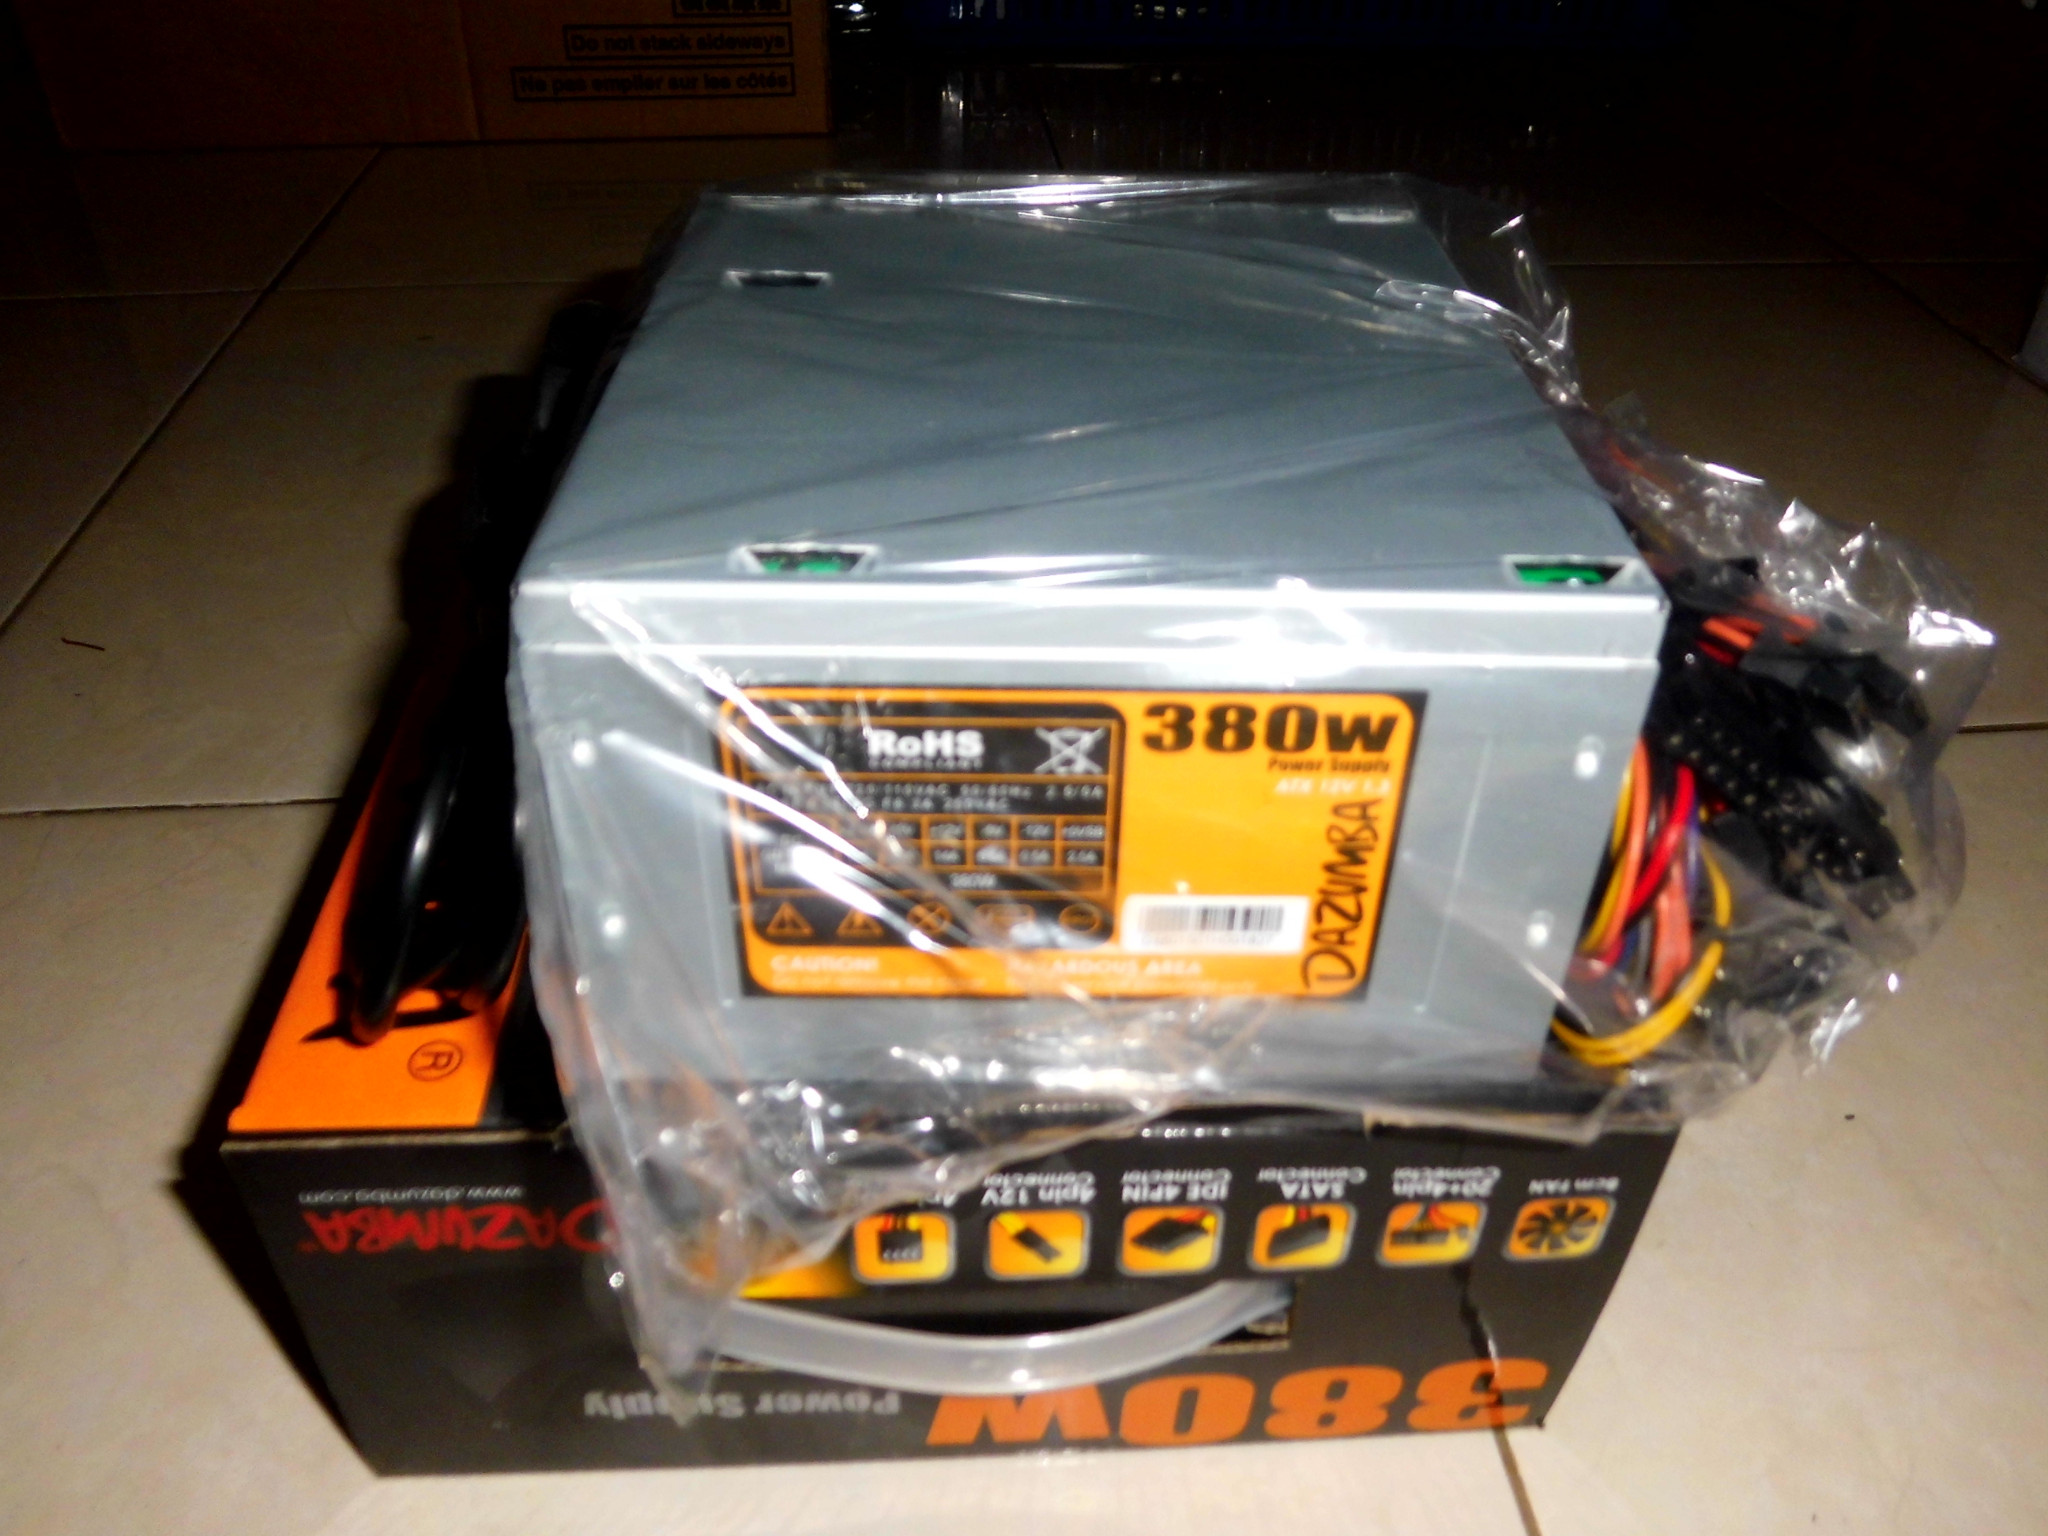 Dazumba Power Supply 380w Silver Referensi Daftar Harga Terbaru 750w 80plus Gold Modular Powersupply Rumah It Source Jual